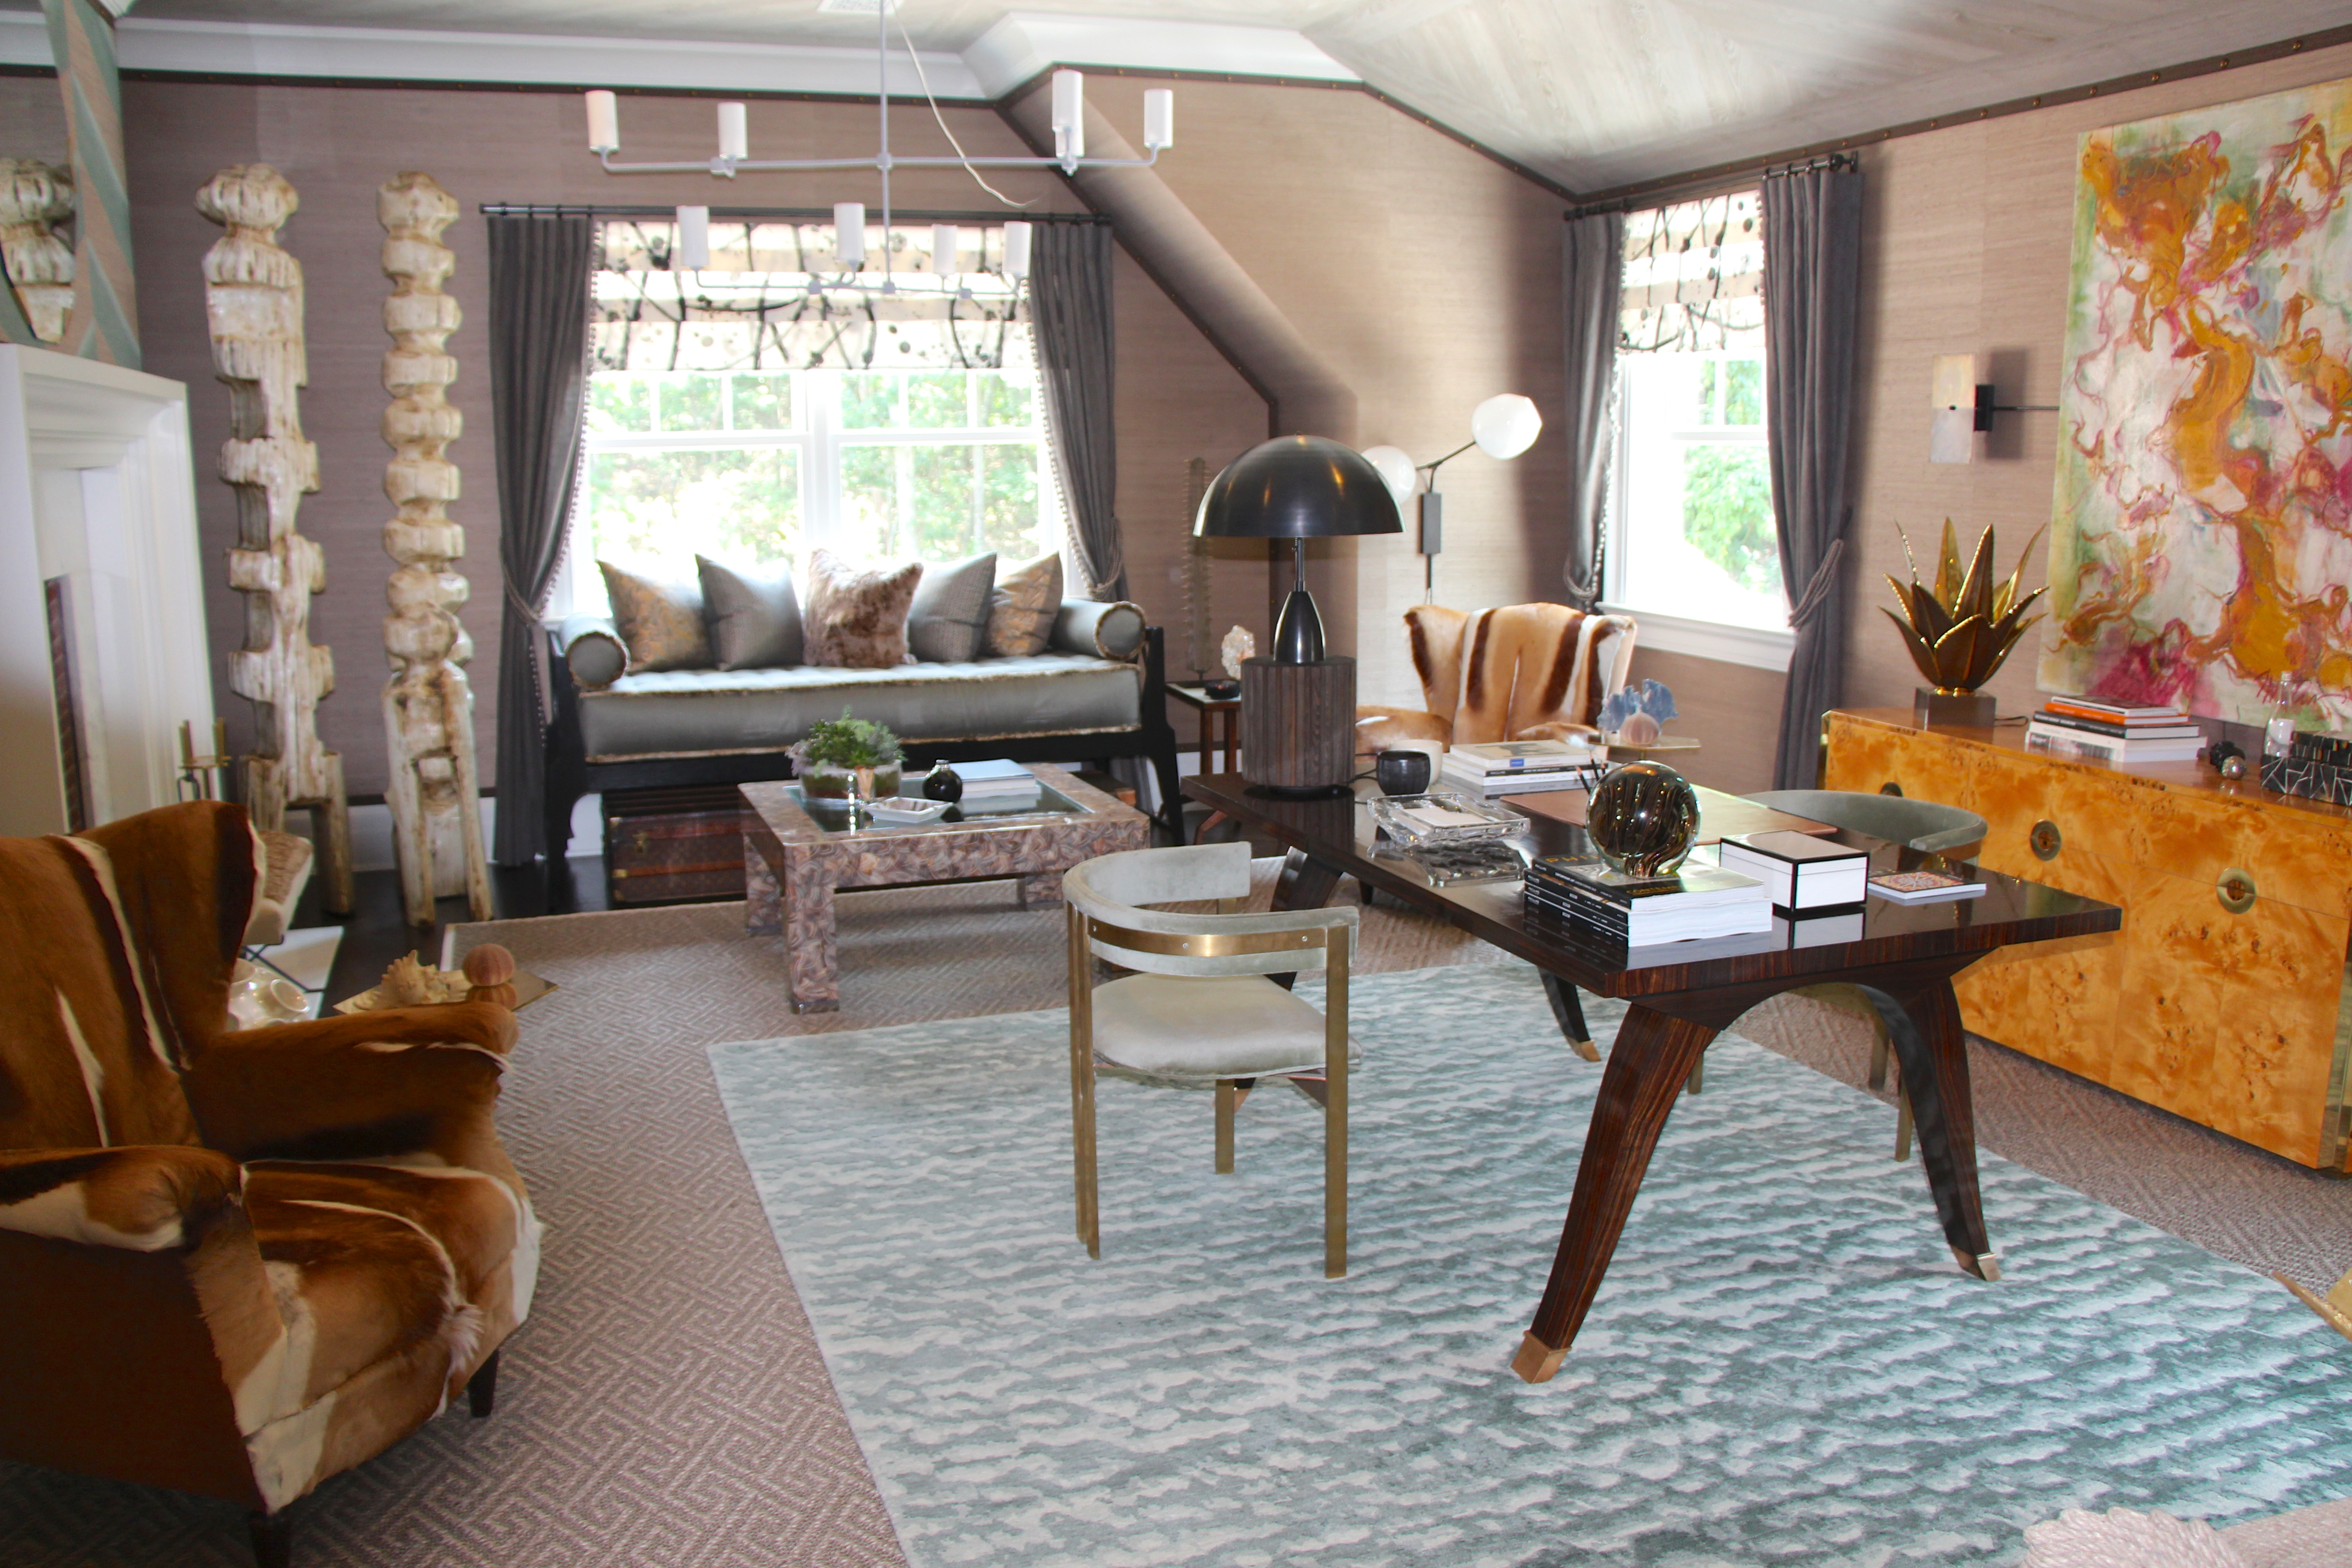 New Kdhamptons Design Diary Photos Of The 2013 Hampton Designer Showhouse Presented By